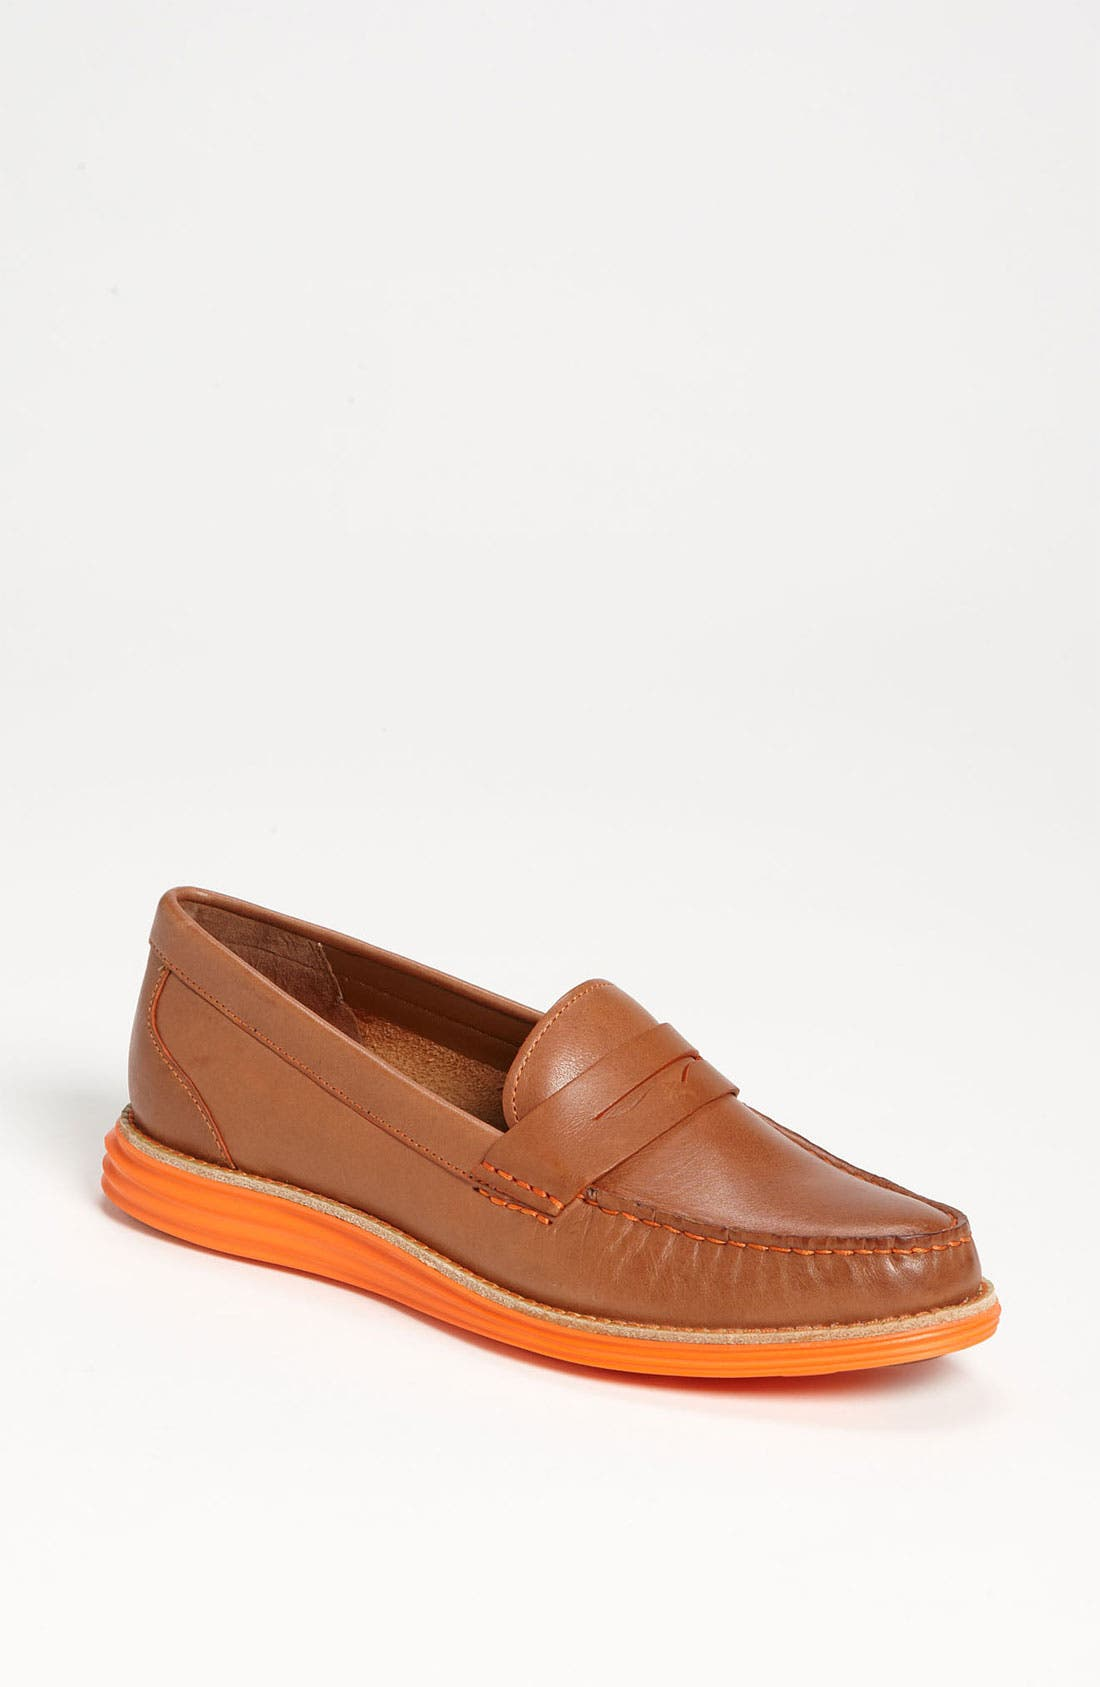 Main Image - Cole Haan 'LunarGrand Monroe' Penny Loafer (Women)